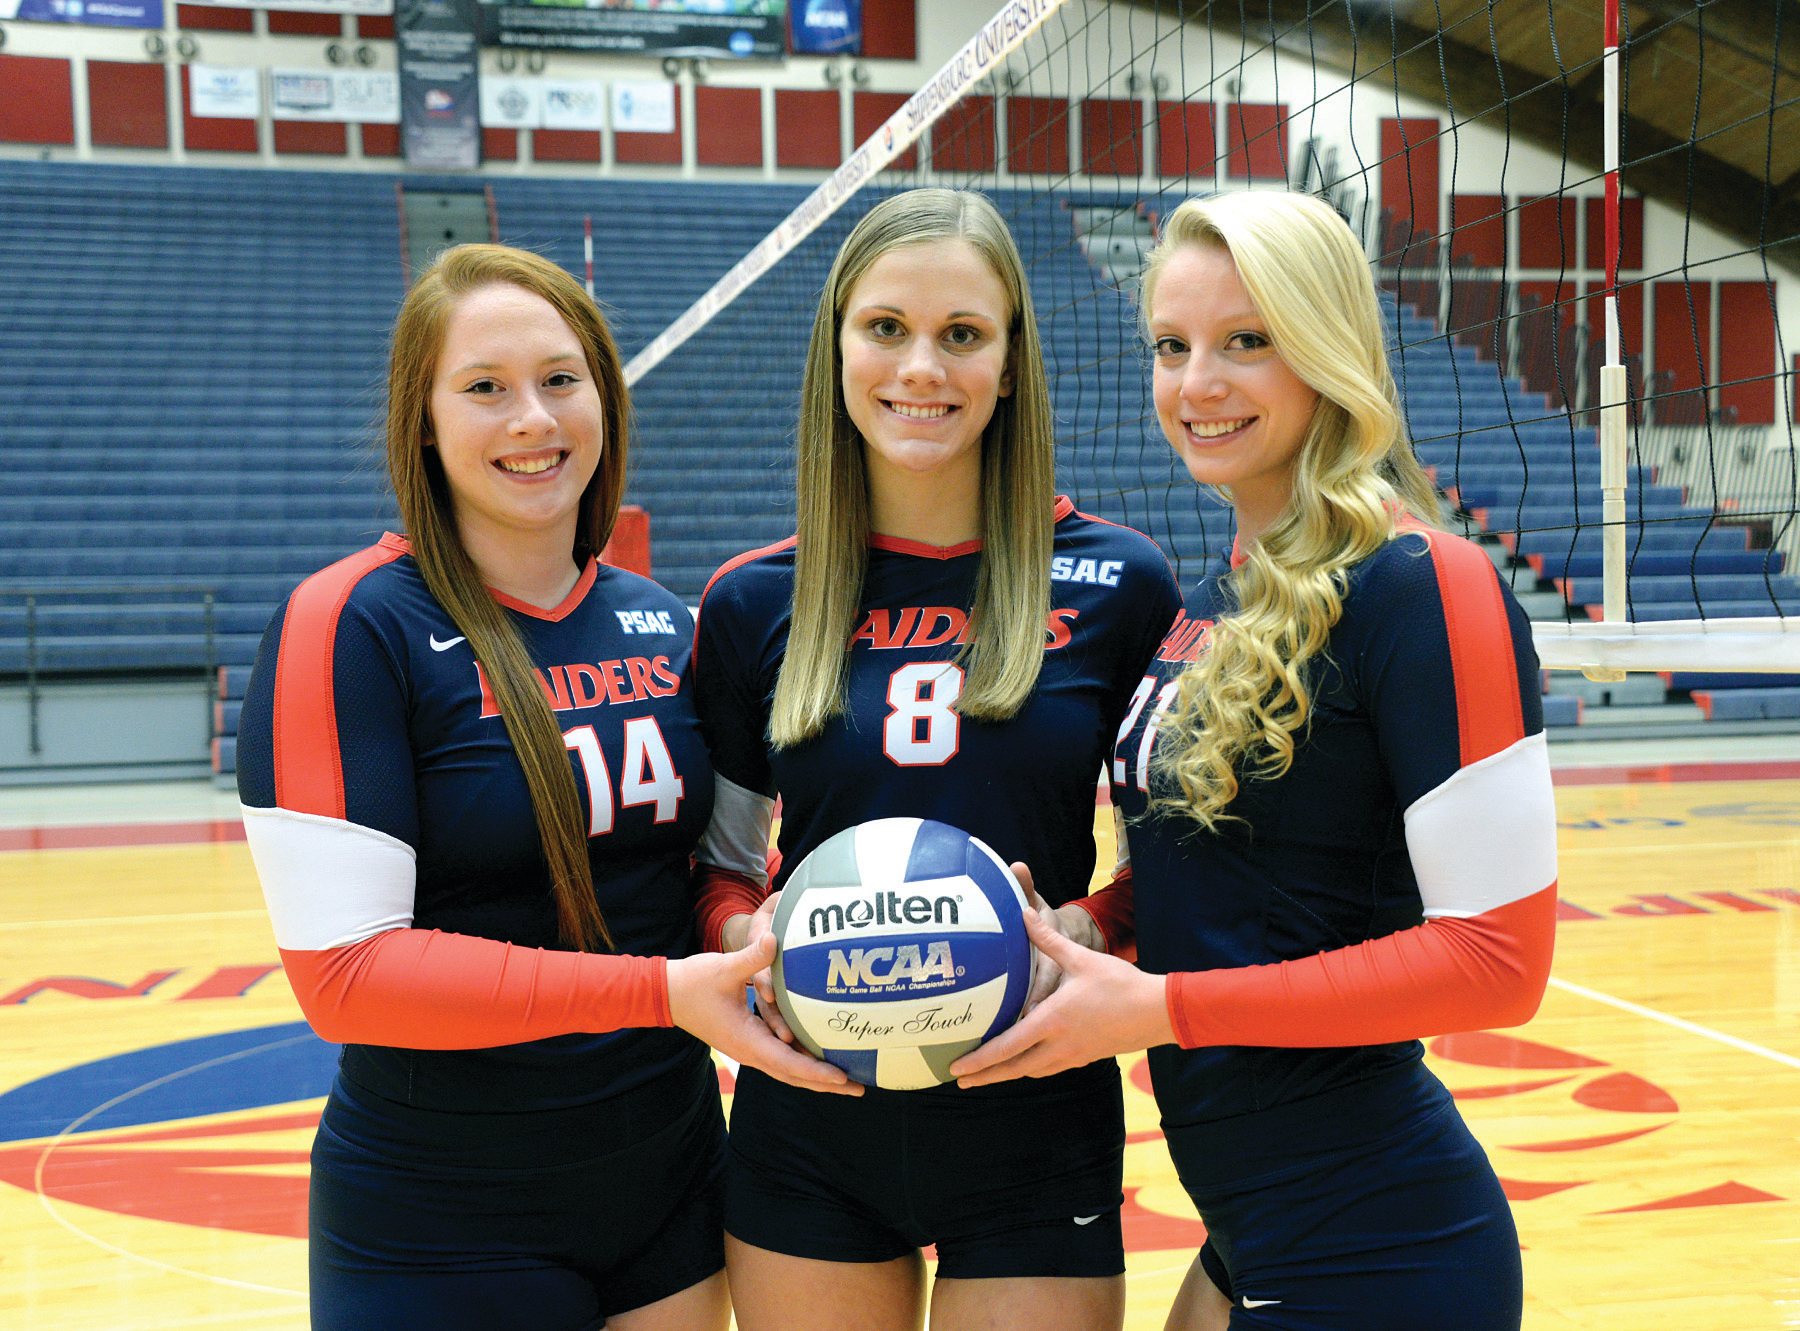 On the volleyball court, Peluso, Goerl, and Nolan helped the team earn its first PSAC championship in 2015.